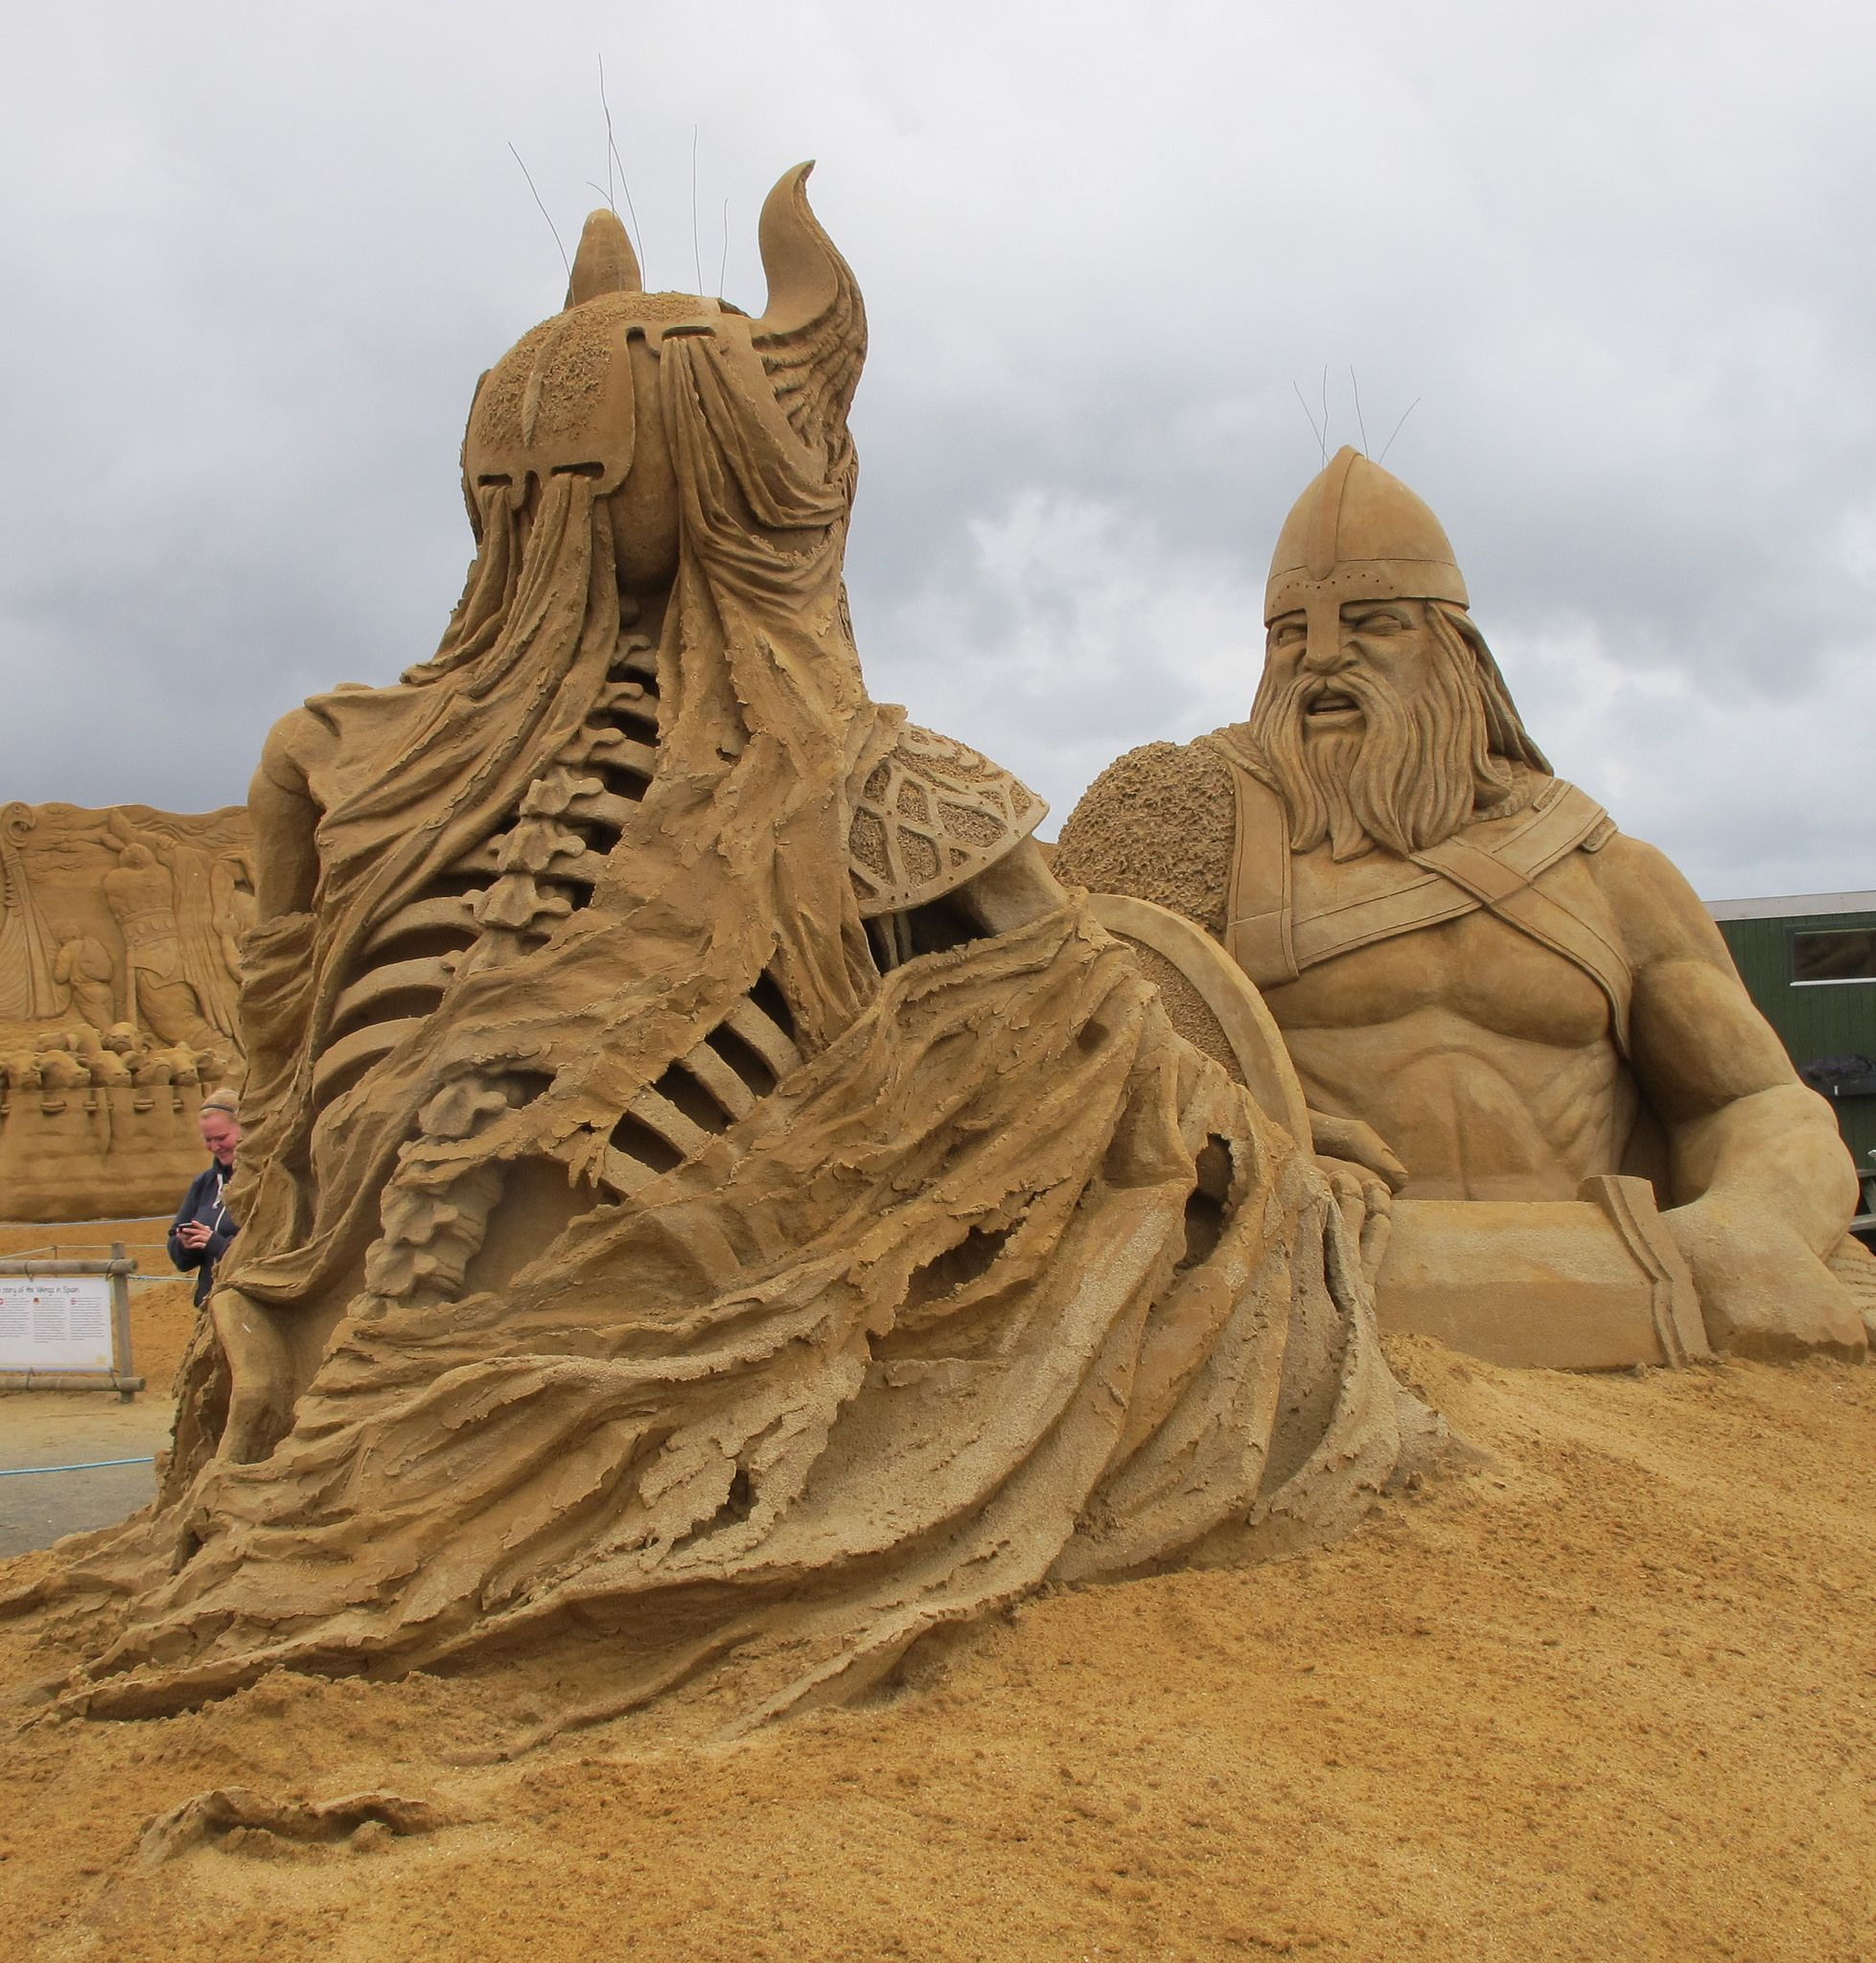 Pixable Closing Up Shop After One Crazy Awesome Ride Sand Sculptures Sand Castle Sand Art